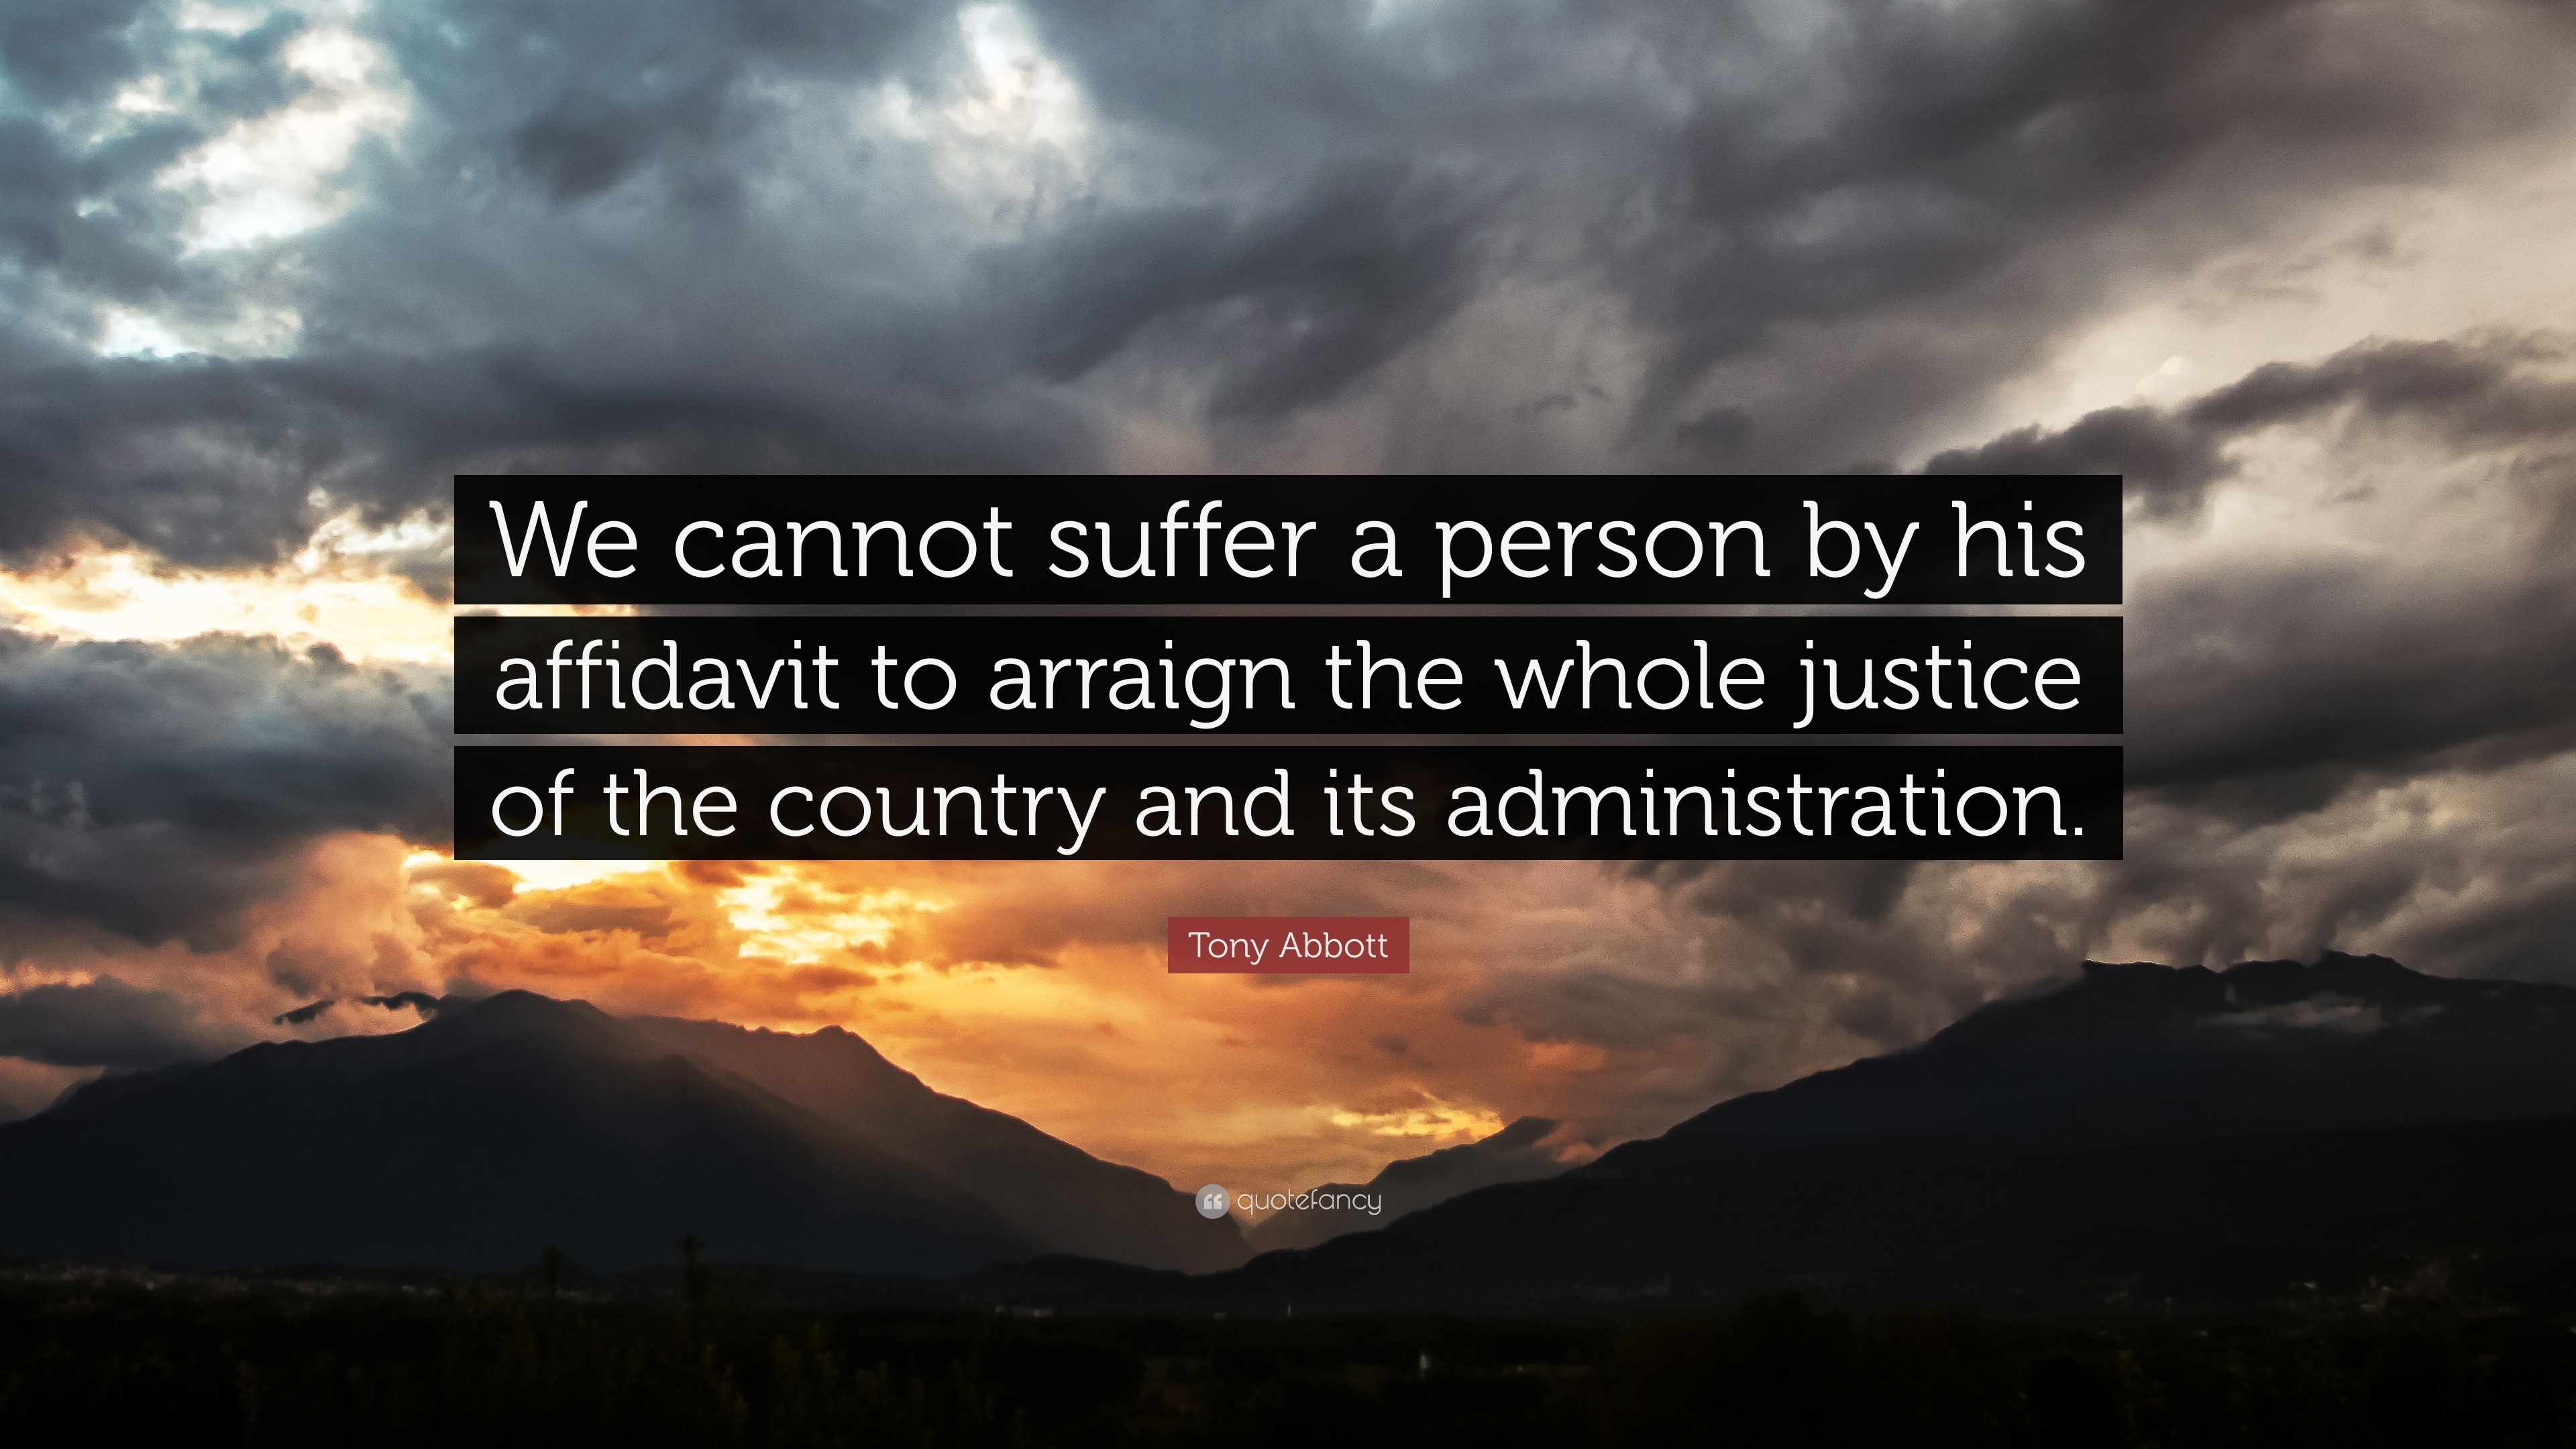 Tony abbott quote we cannot suffer a person by his affidavit to 7 wallpapers altavistaventures Images